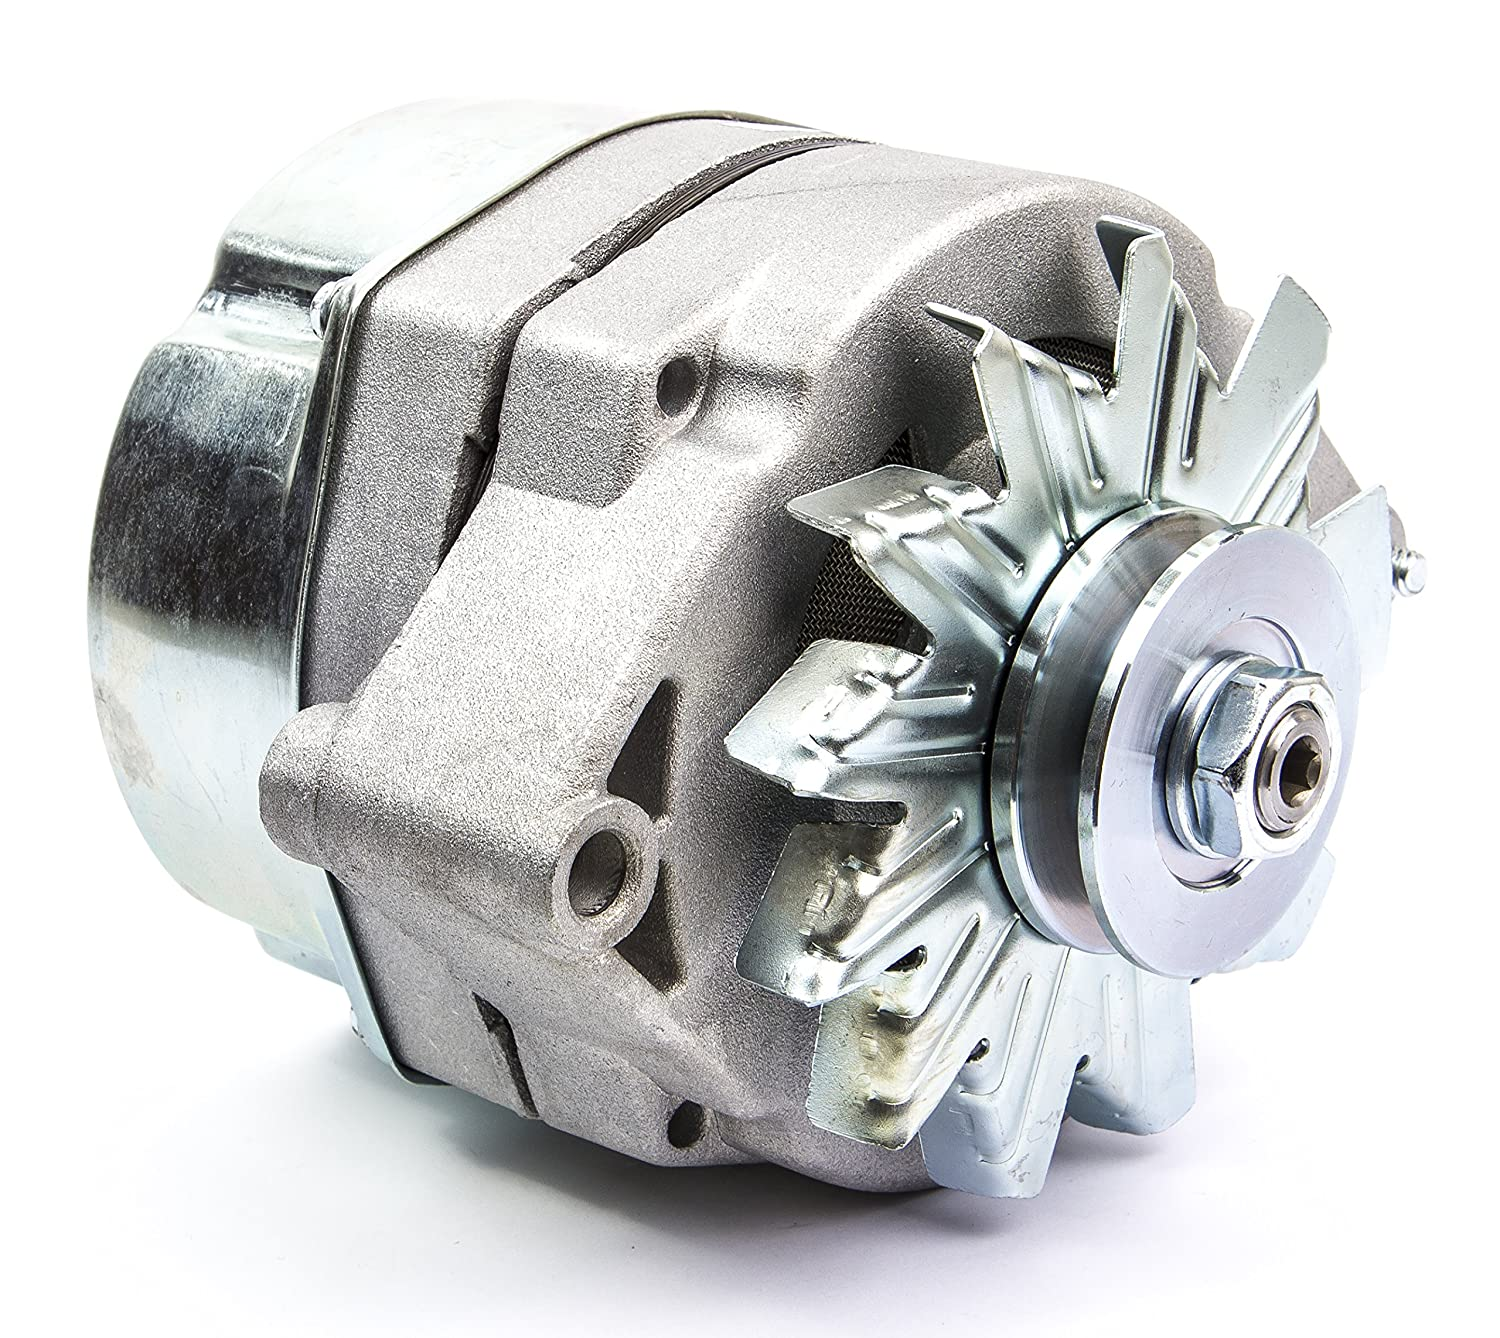 Sierra 18 5956 Alternator 1 Wire No Core Automotive Toyota Onewire Upgrade For Simple Wiring Page 2